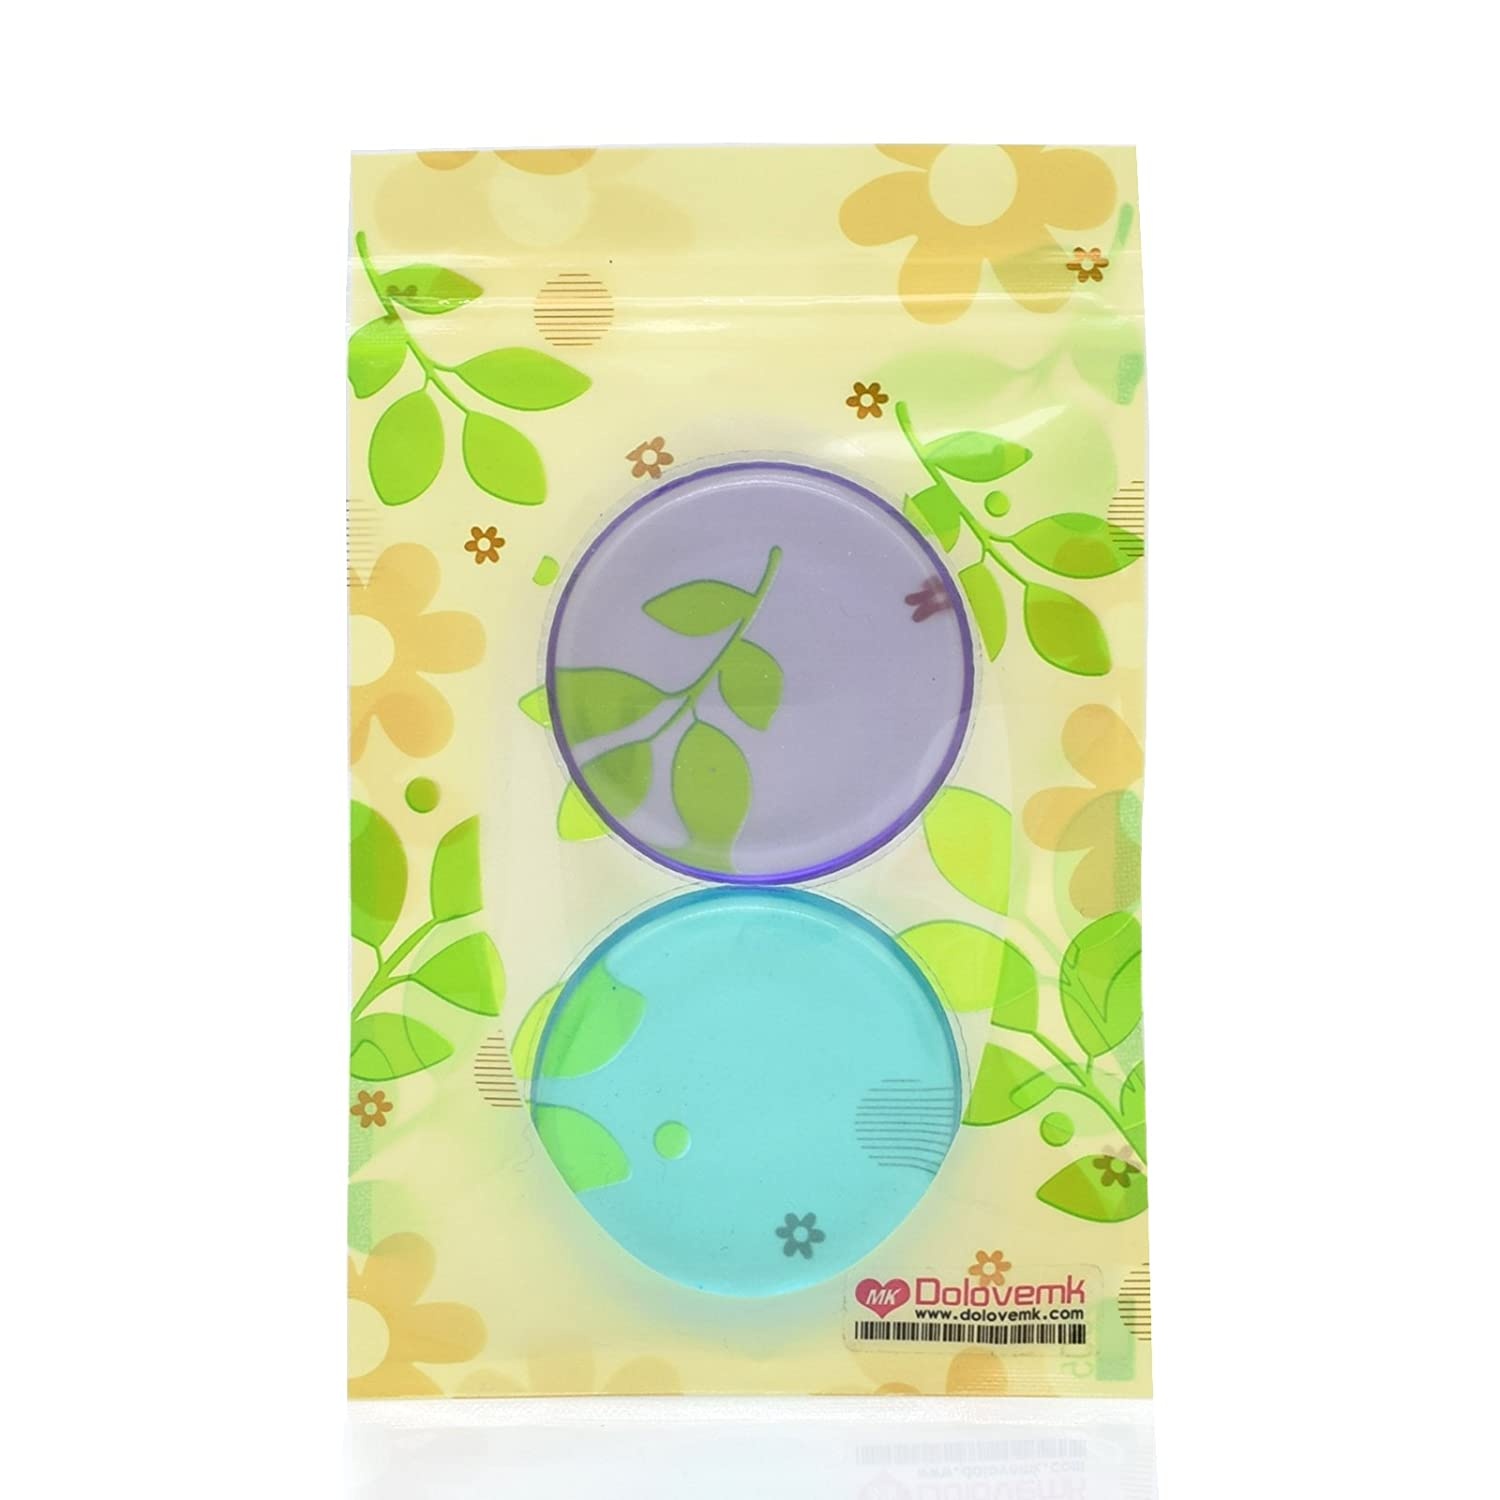 Dolovemk 2PCS Beauty Silicone Makeup Sponge Blending Pad for BB CC Cream Concealer Highlighting Liquid (Purple+Blue)